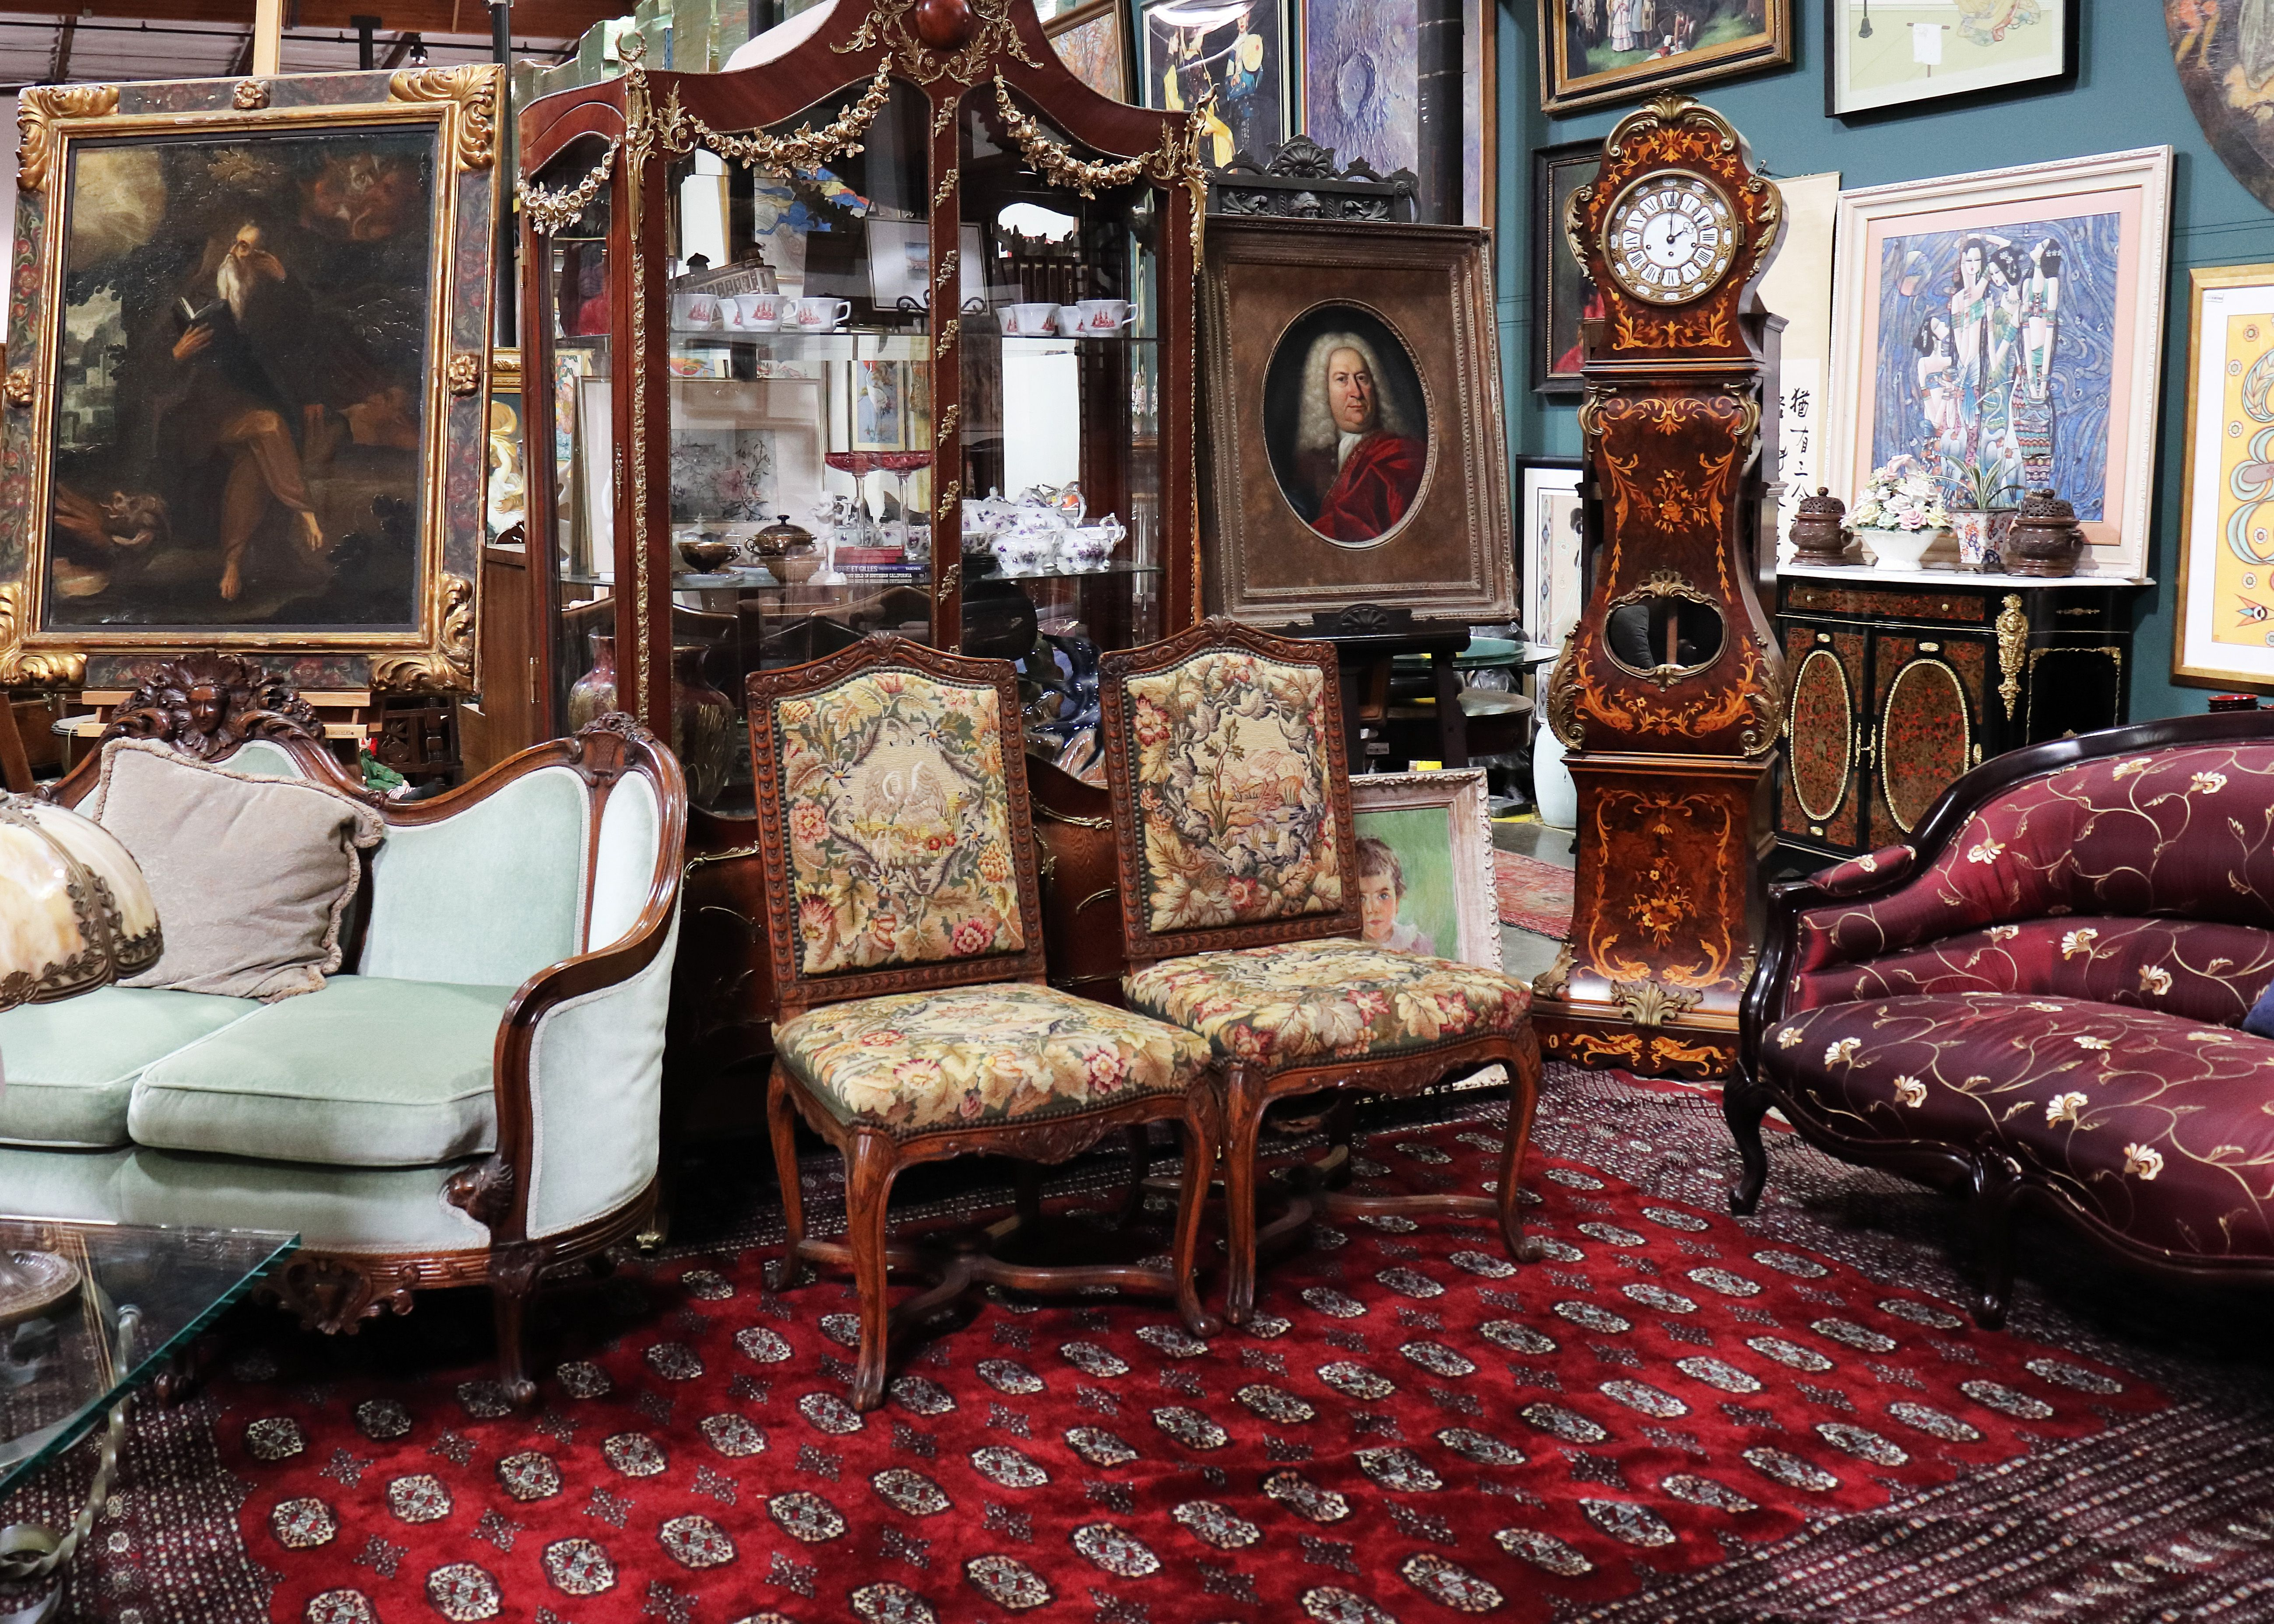 Antiques Collectibles Fine Art So Much More Check Out Our New Baum Galleries Virtual Tour Video To See The Collection Gallery Virtual Tour Antiques